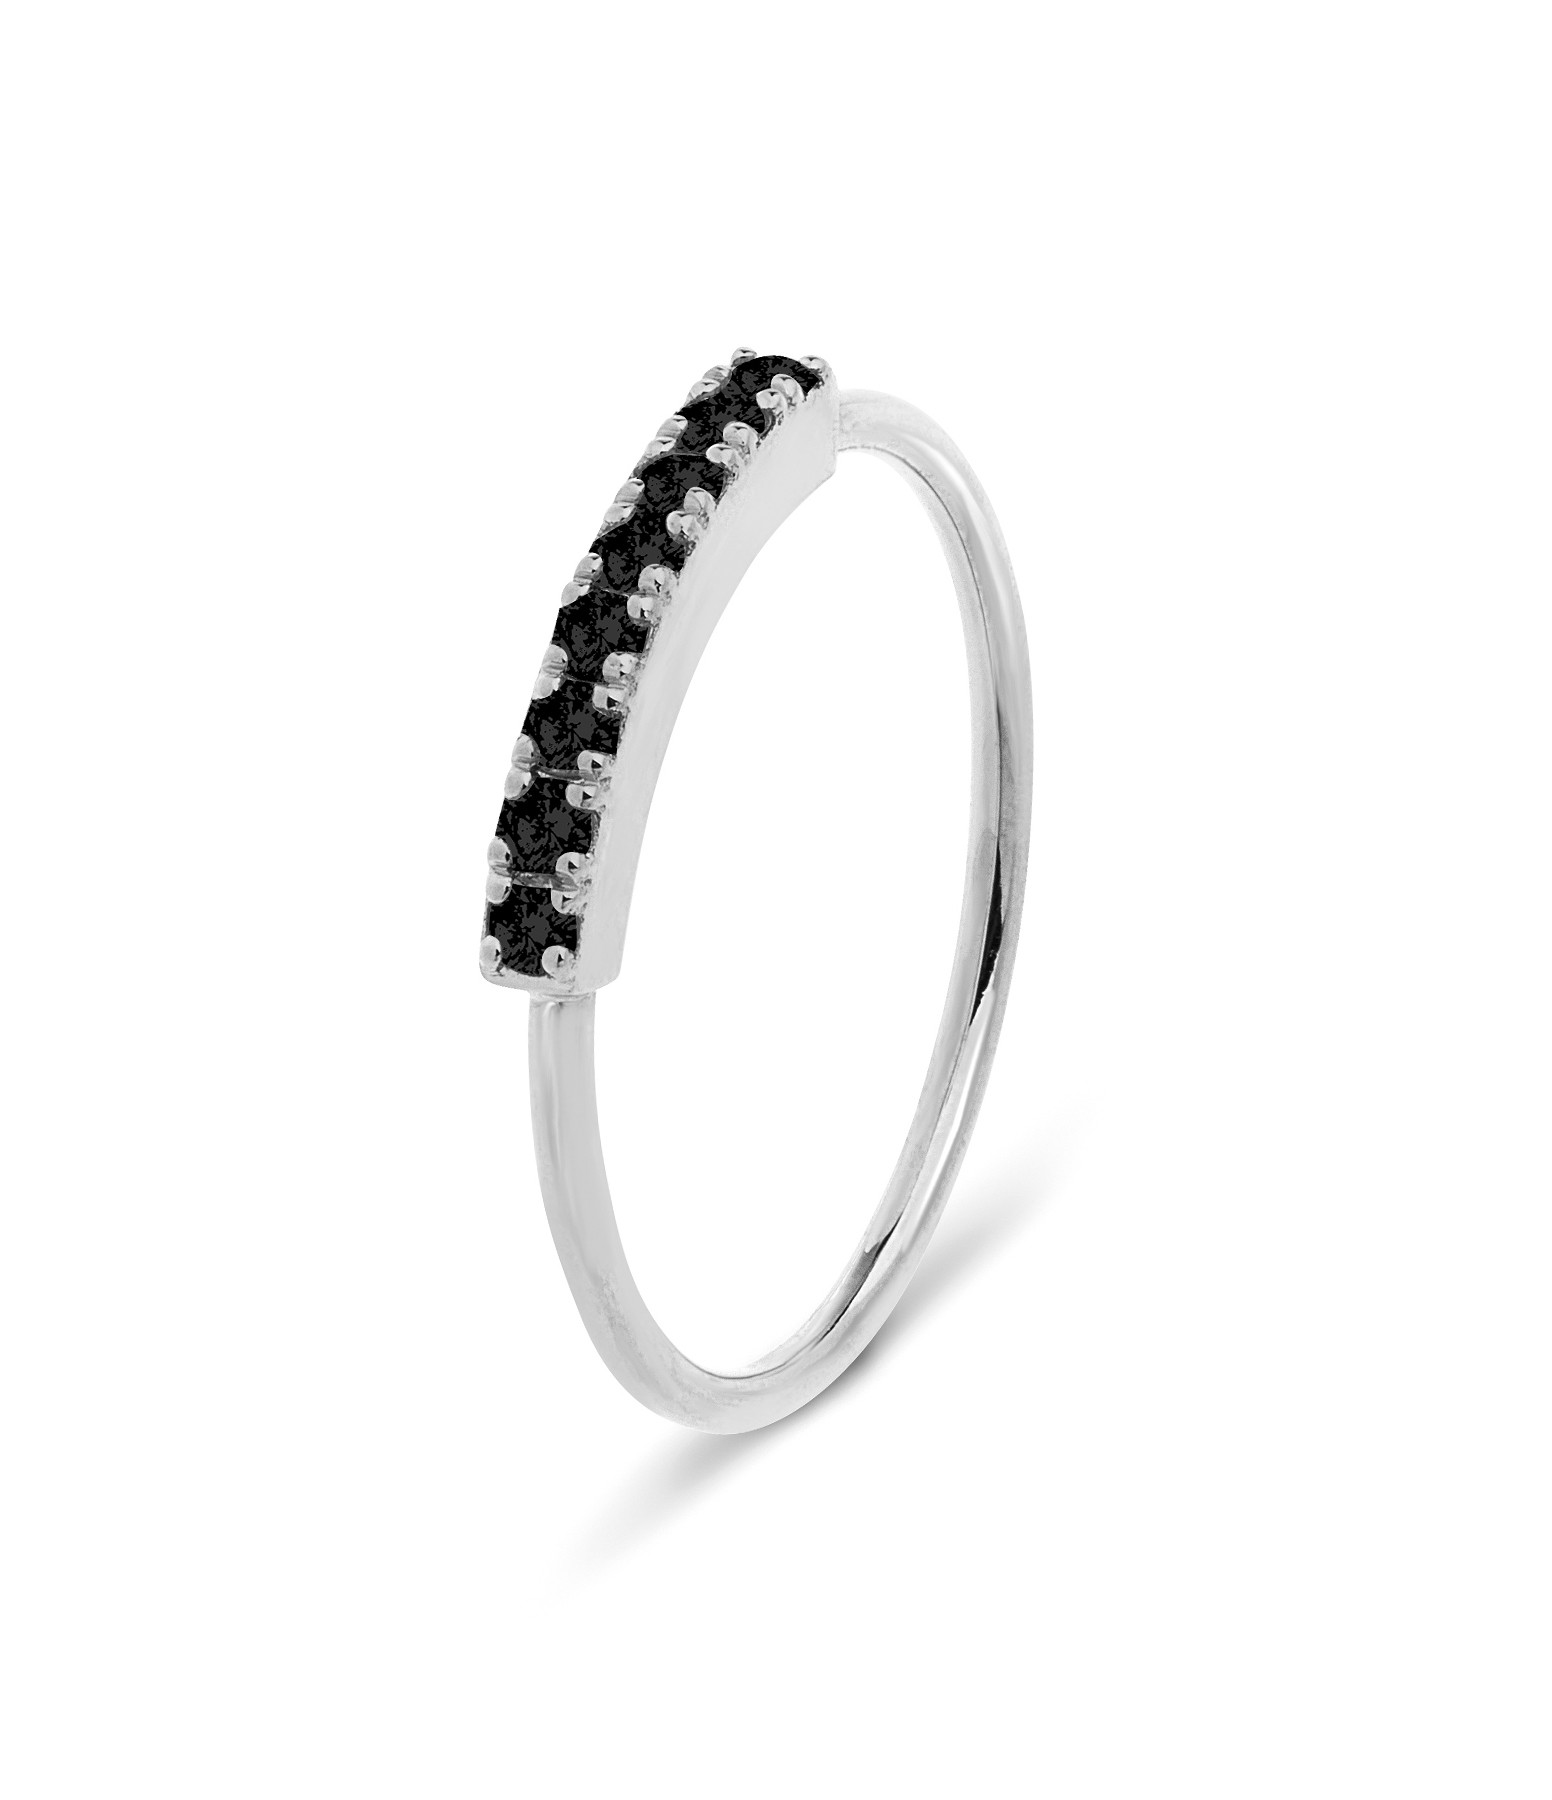 NAVA JOAILLERIE - Bague Demi-Alliance Hash Diamants Noirs Or Blanc